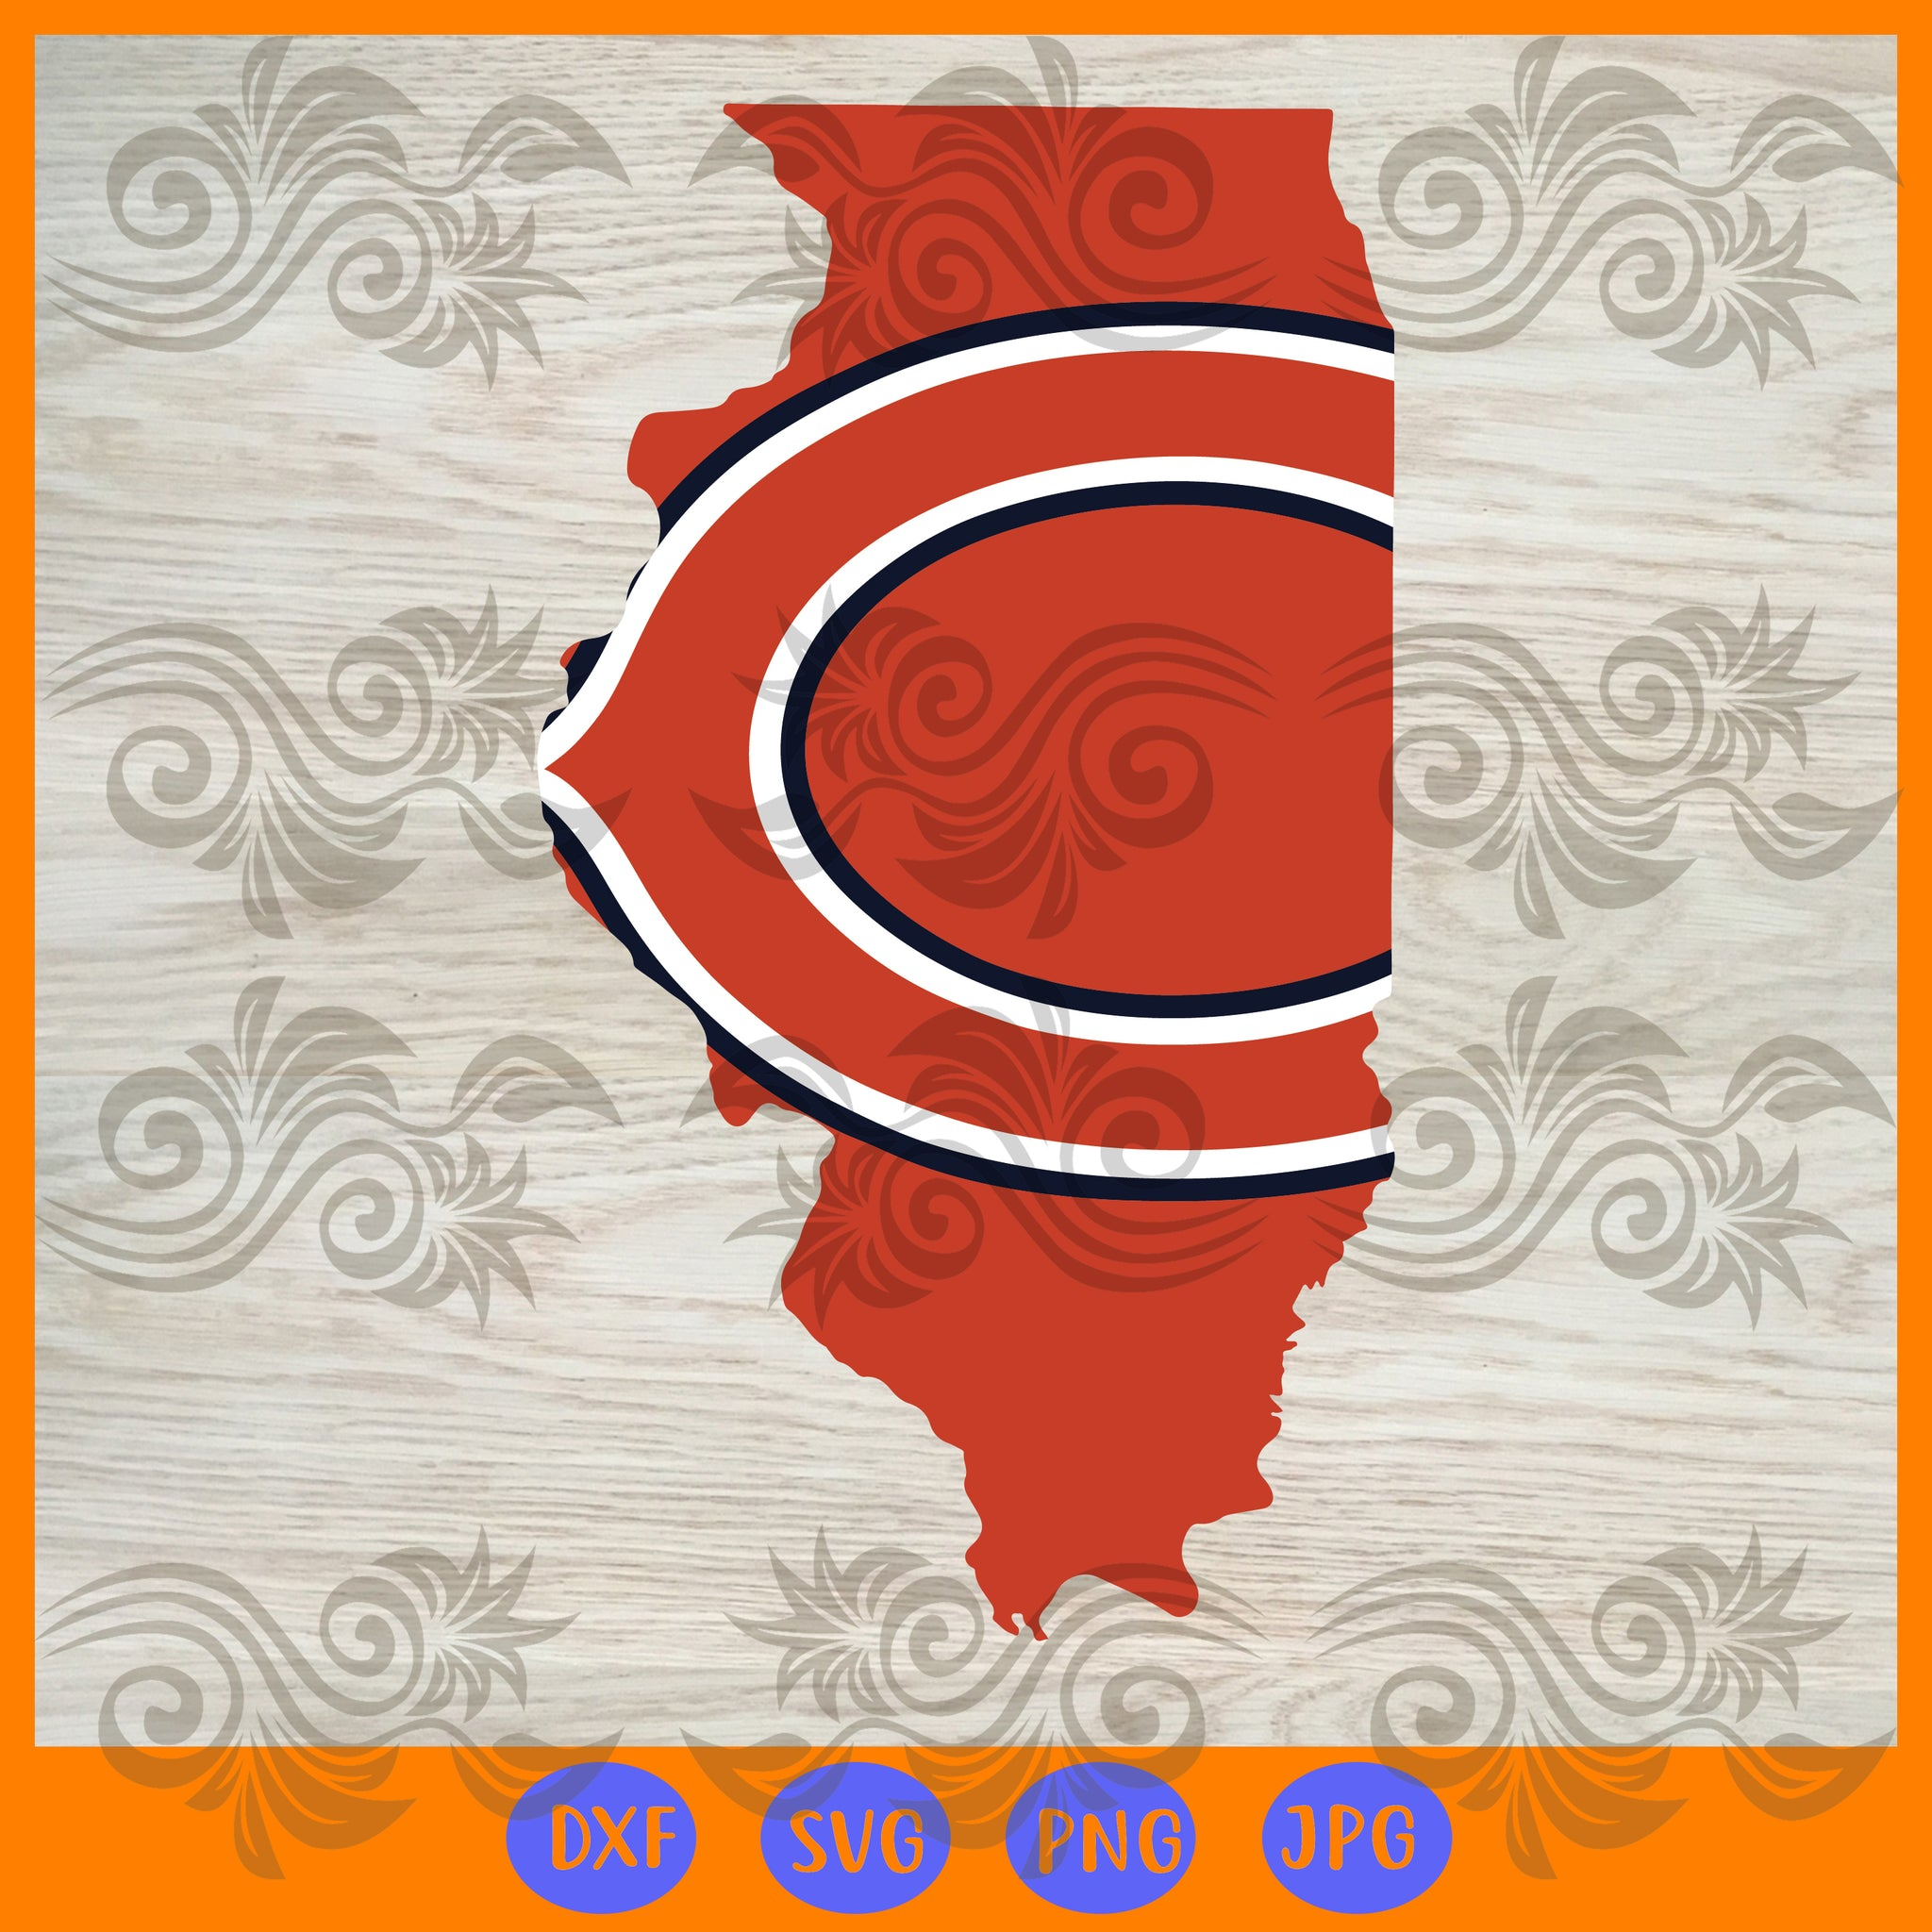 Chicago Bears SVG,SVG Files For Silhouette, Files For Cricut, SVG, DXF, EPS, PNG Instant Download